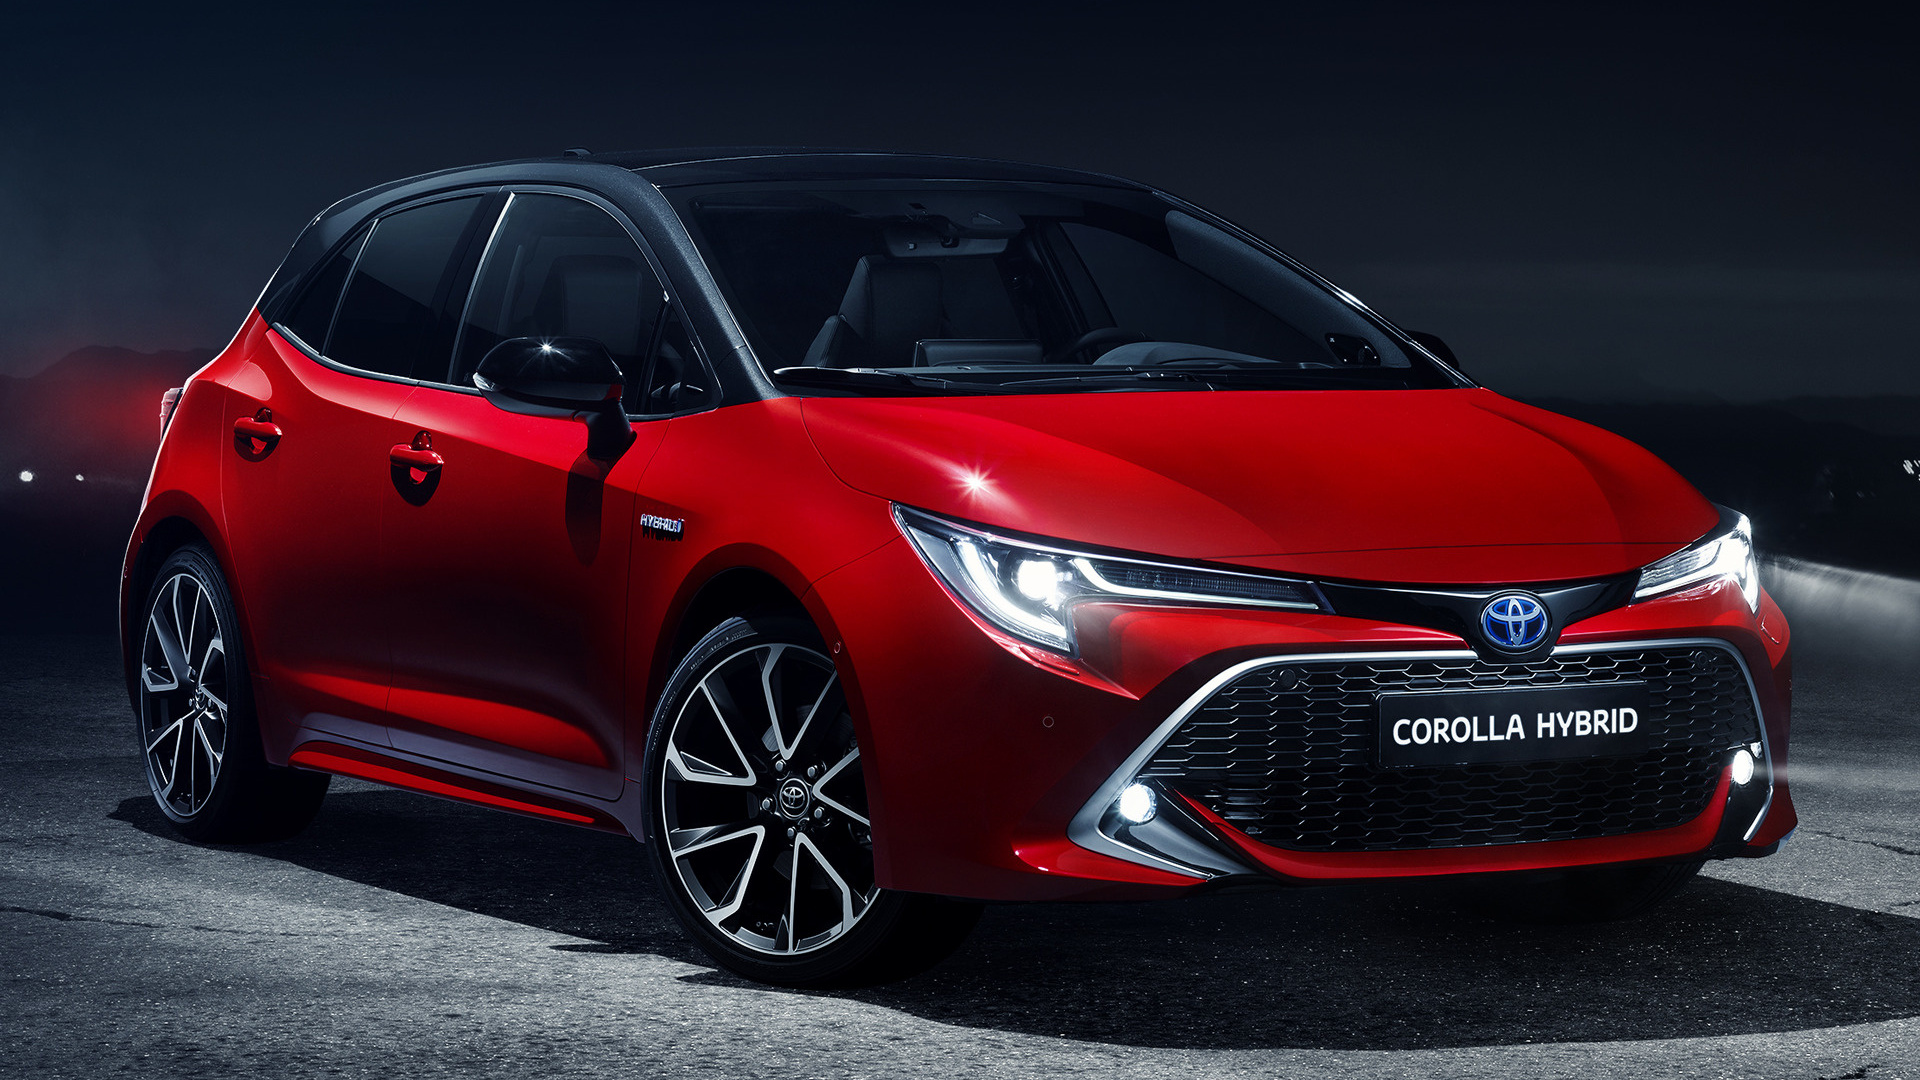 2019 Toyota Corolla Hybrid Wallpapers And Hd Images